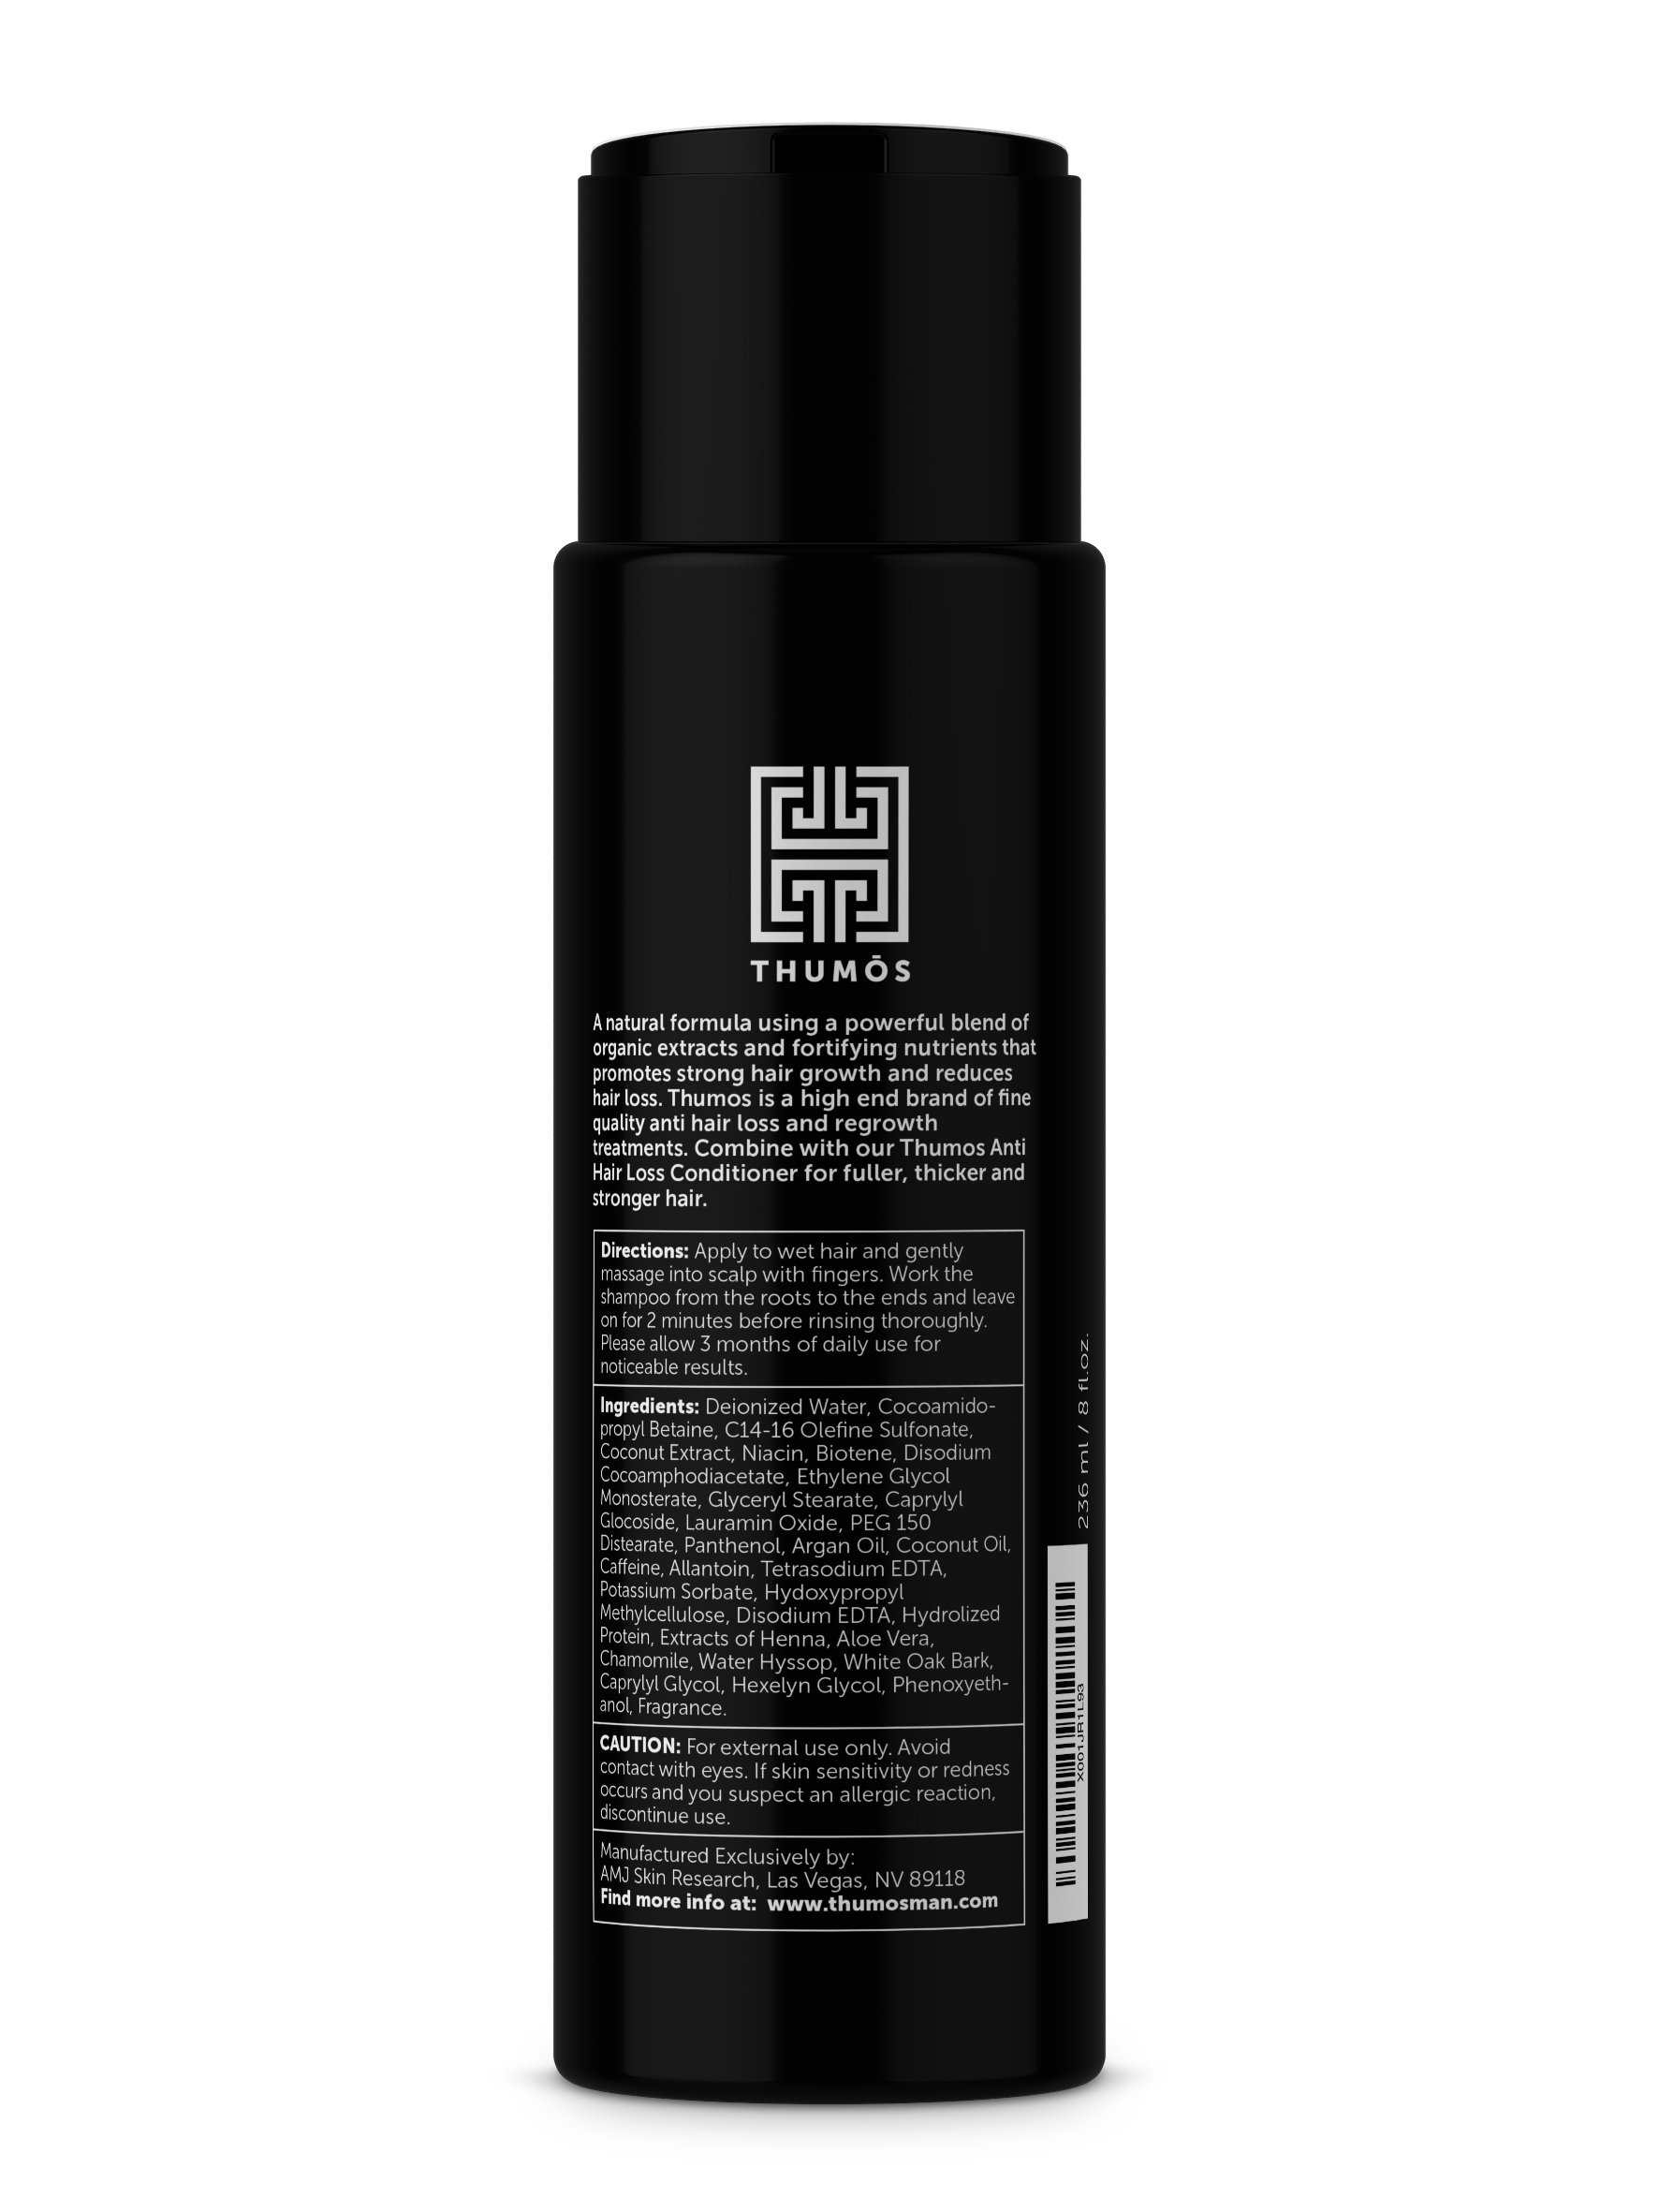 Male Hair Loss Shampoo for Men – Hair Thickening Shampoo Stimulates & Invigorates Hair Follicles to Promote Thicker, Fuller Growth by Thumos by Thumos (Image #2)